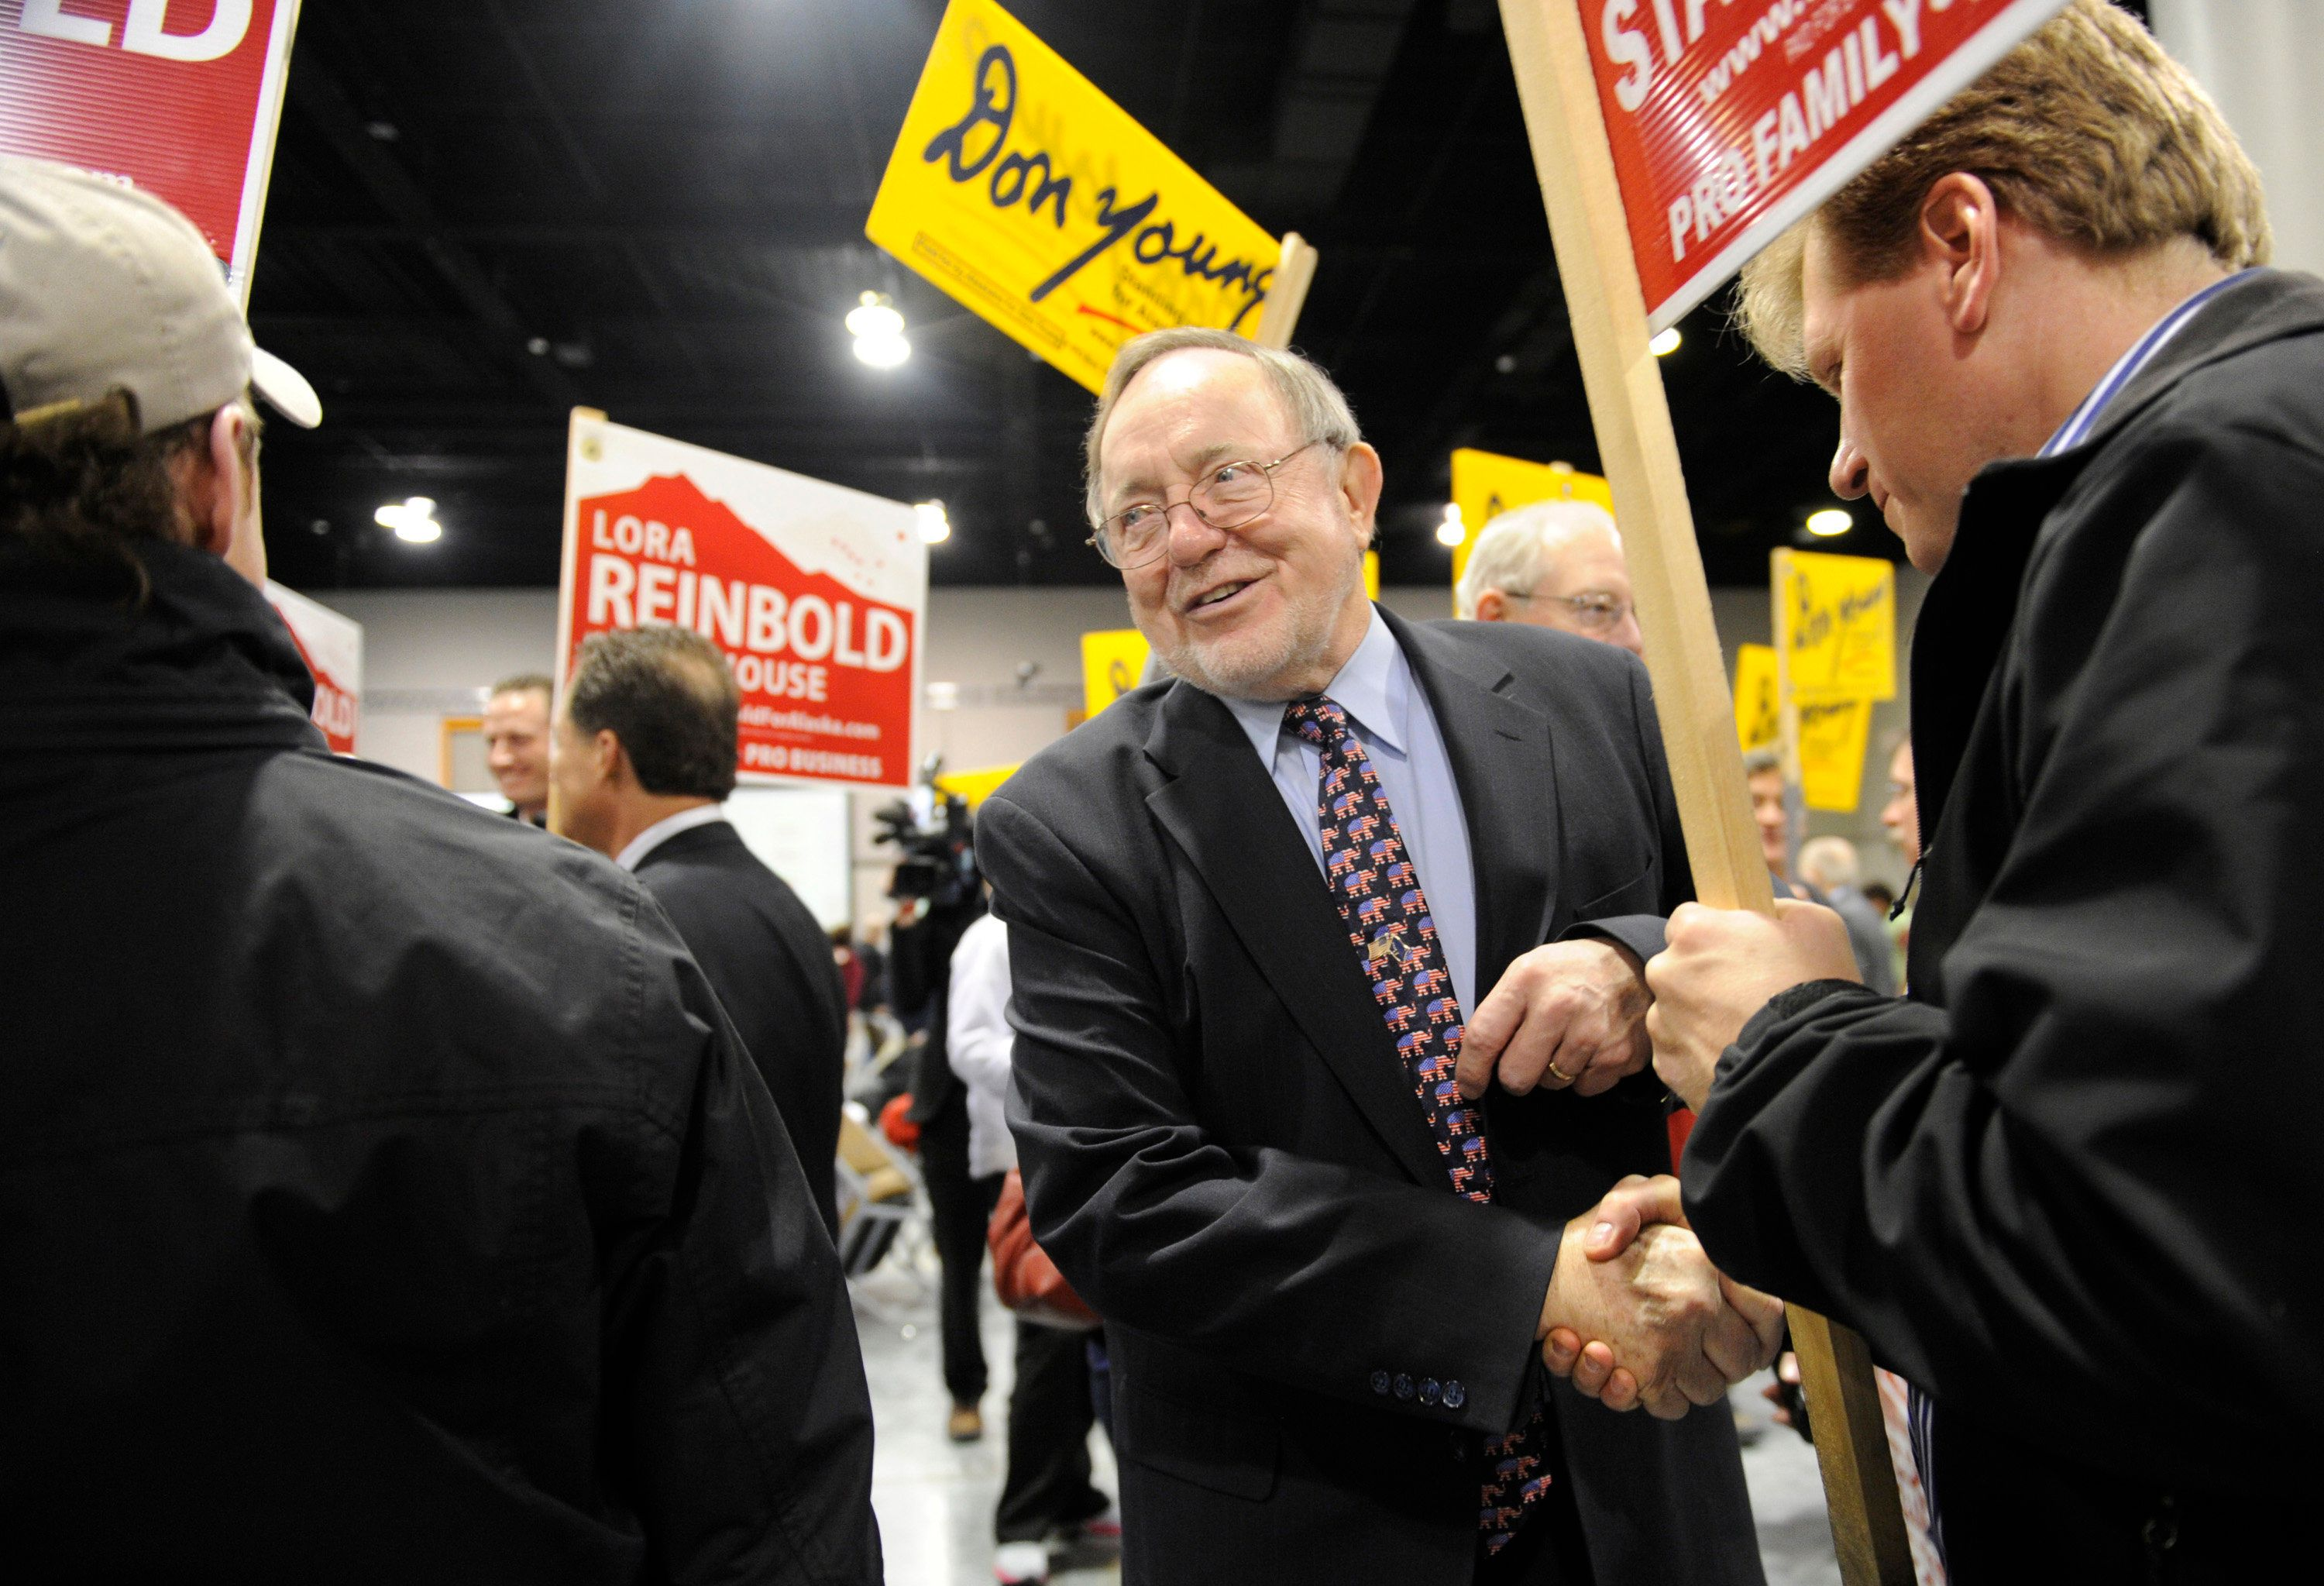 Rep. Don Young greets supporters at the Dena'ina Center on Tuesday, November 6, 2012, in Anchorage, Alaska. The Republican won his 21st term in Congresss. (Marc Lester/Anchorage Daily News/MCT via Getty Images)